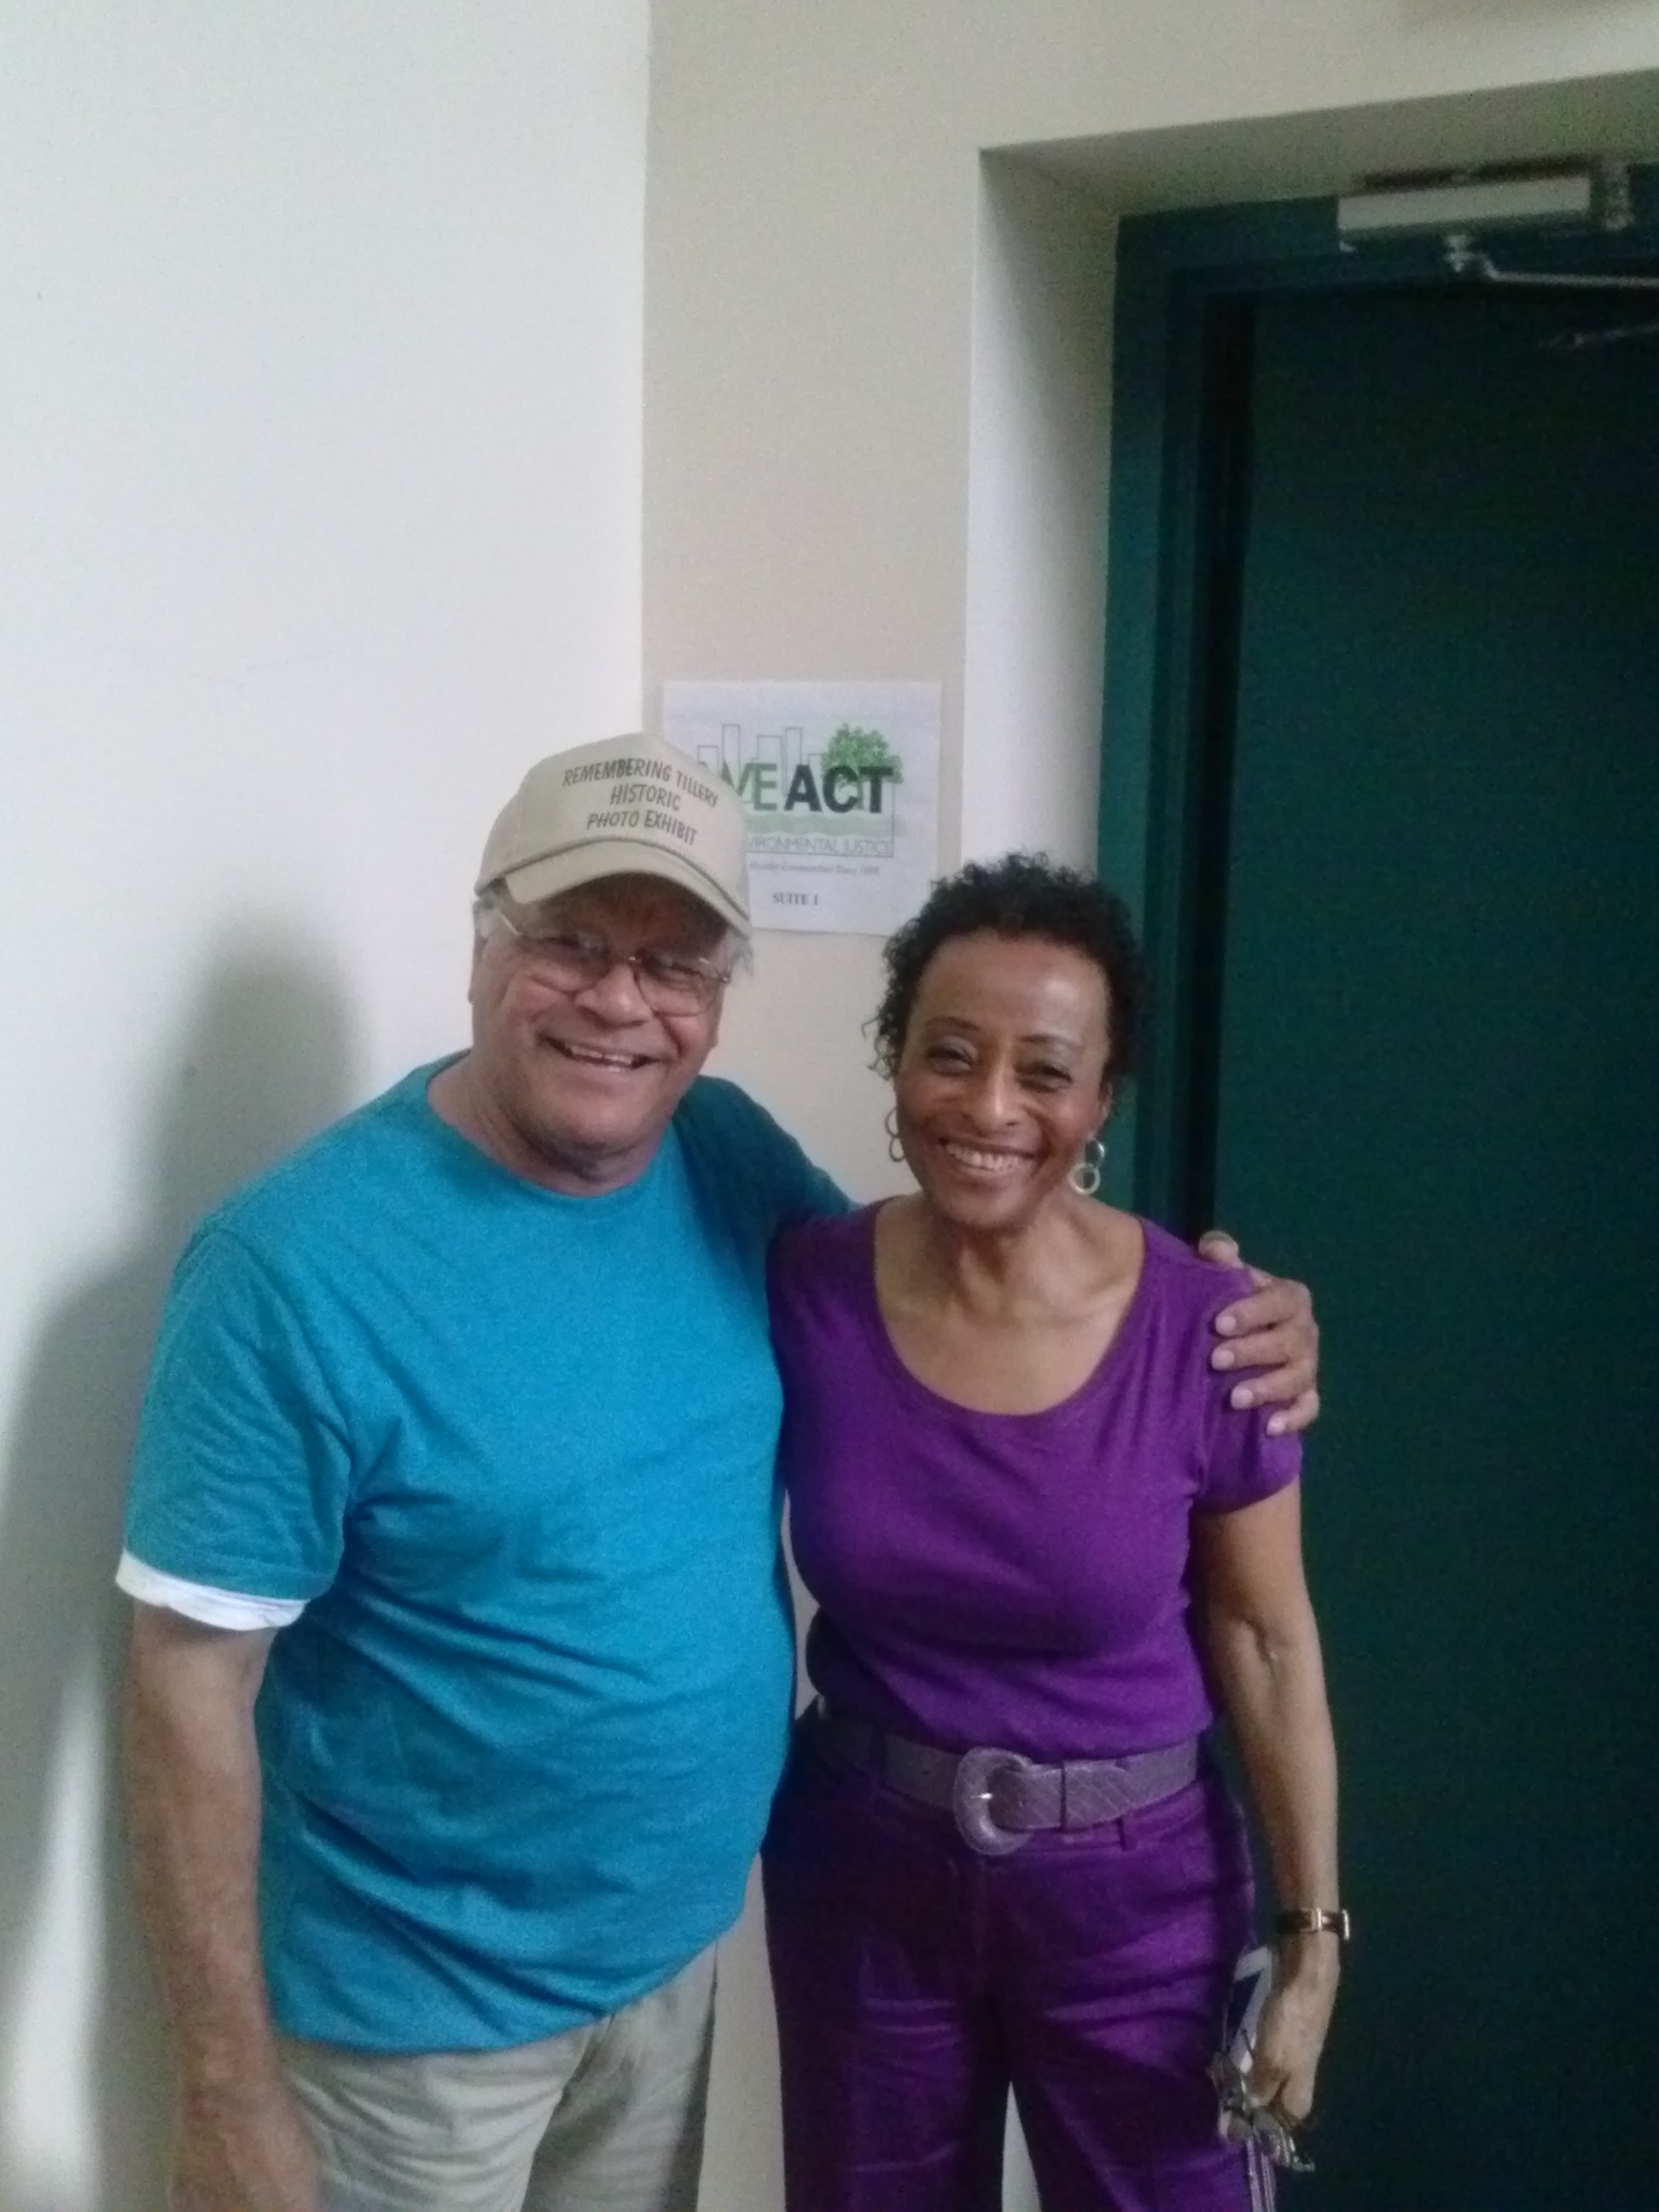 Gary Grant, NCEJN Executive Director and Peggy Shepard, WEACT for Environmental Justice Executive Director in New York City, August 2013